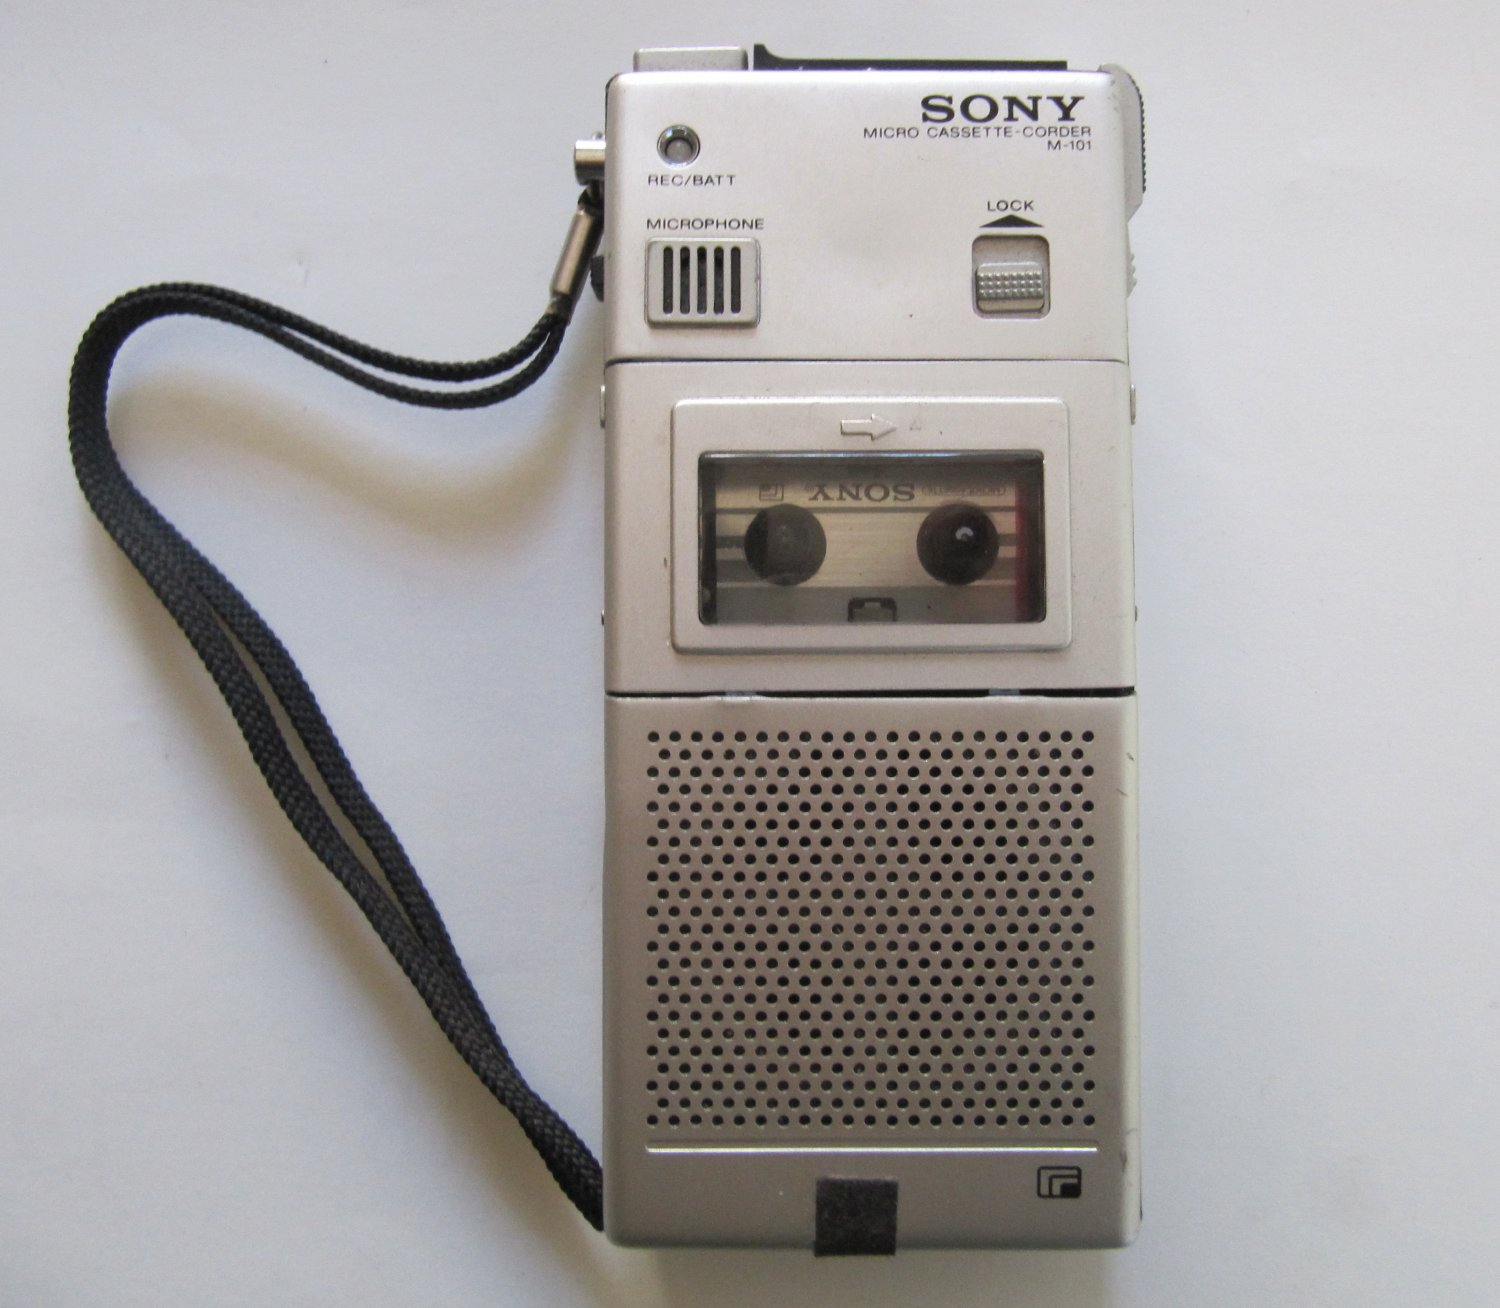 FOR PARTS OR REPAIR Vintage Sony Micro Cassette Recorder M-1-1 Portable Microcassette Tape Player